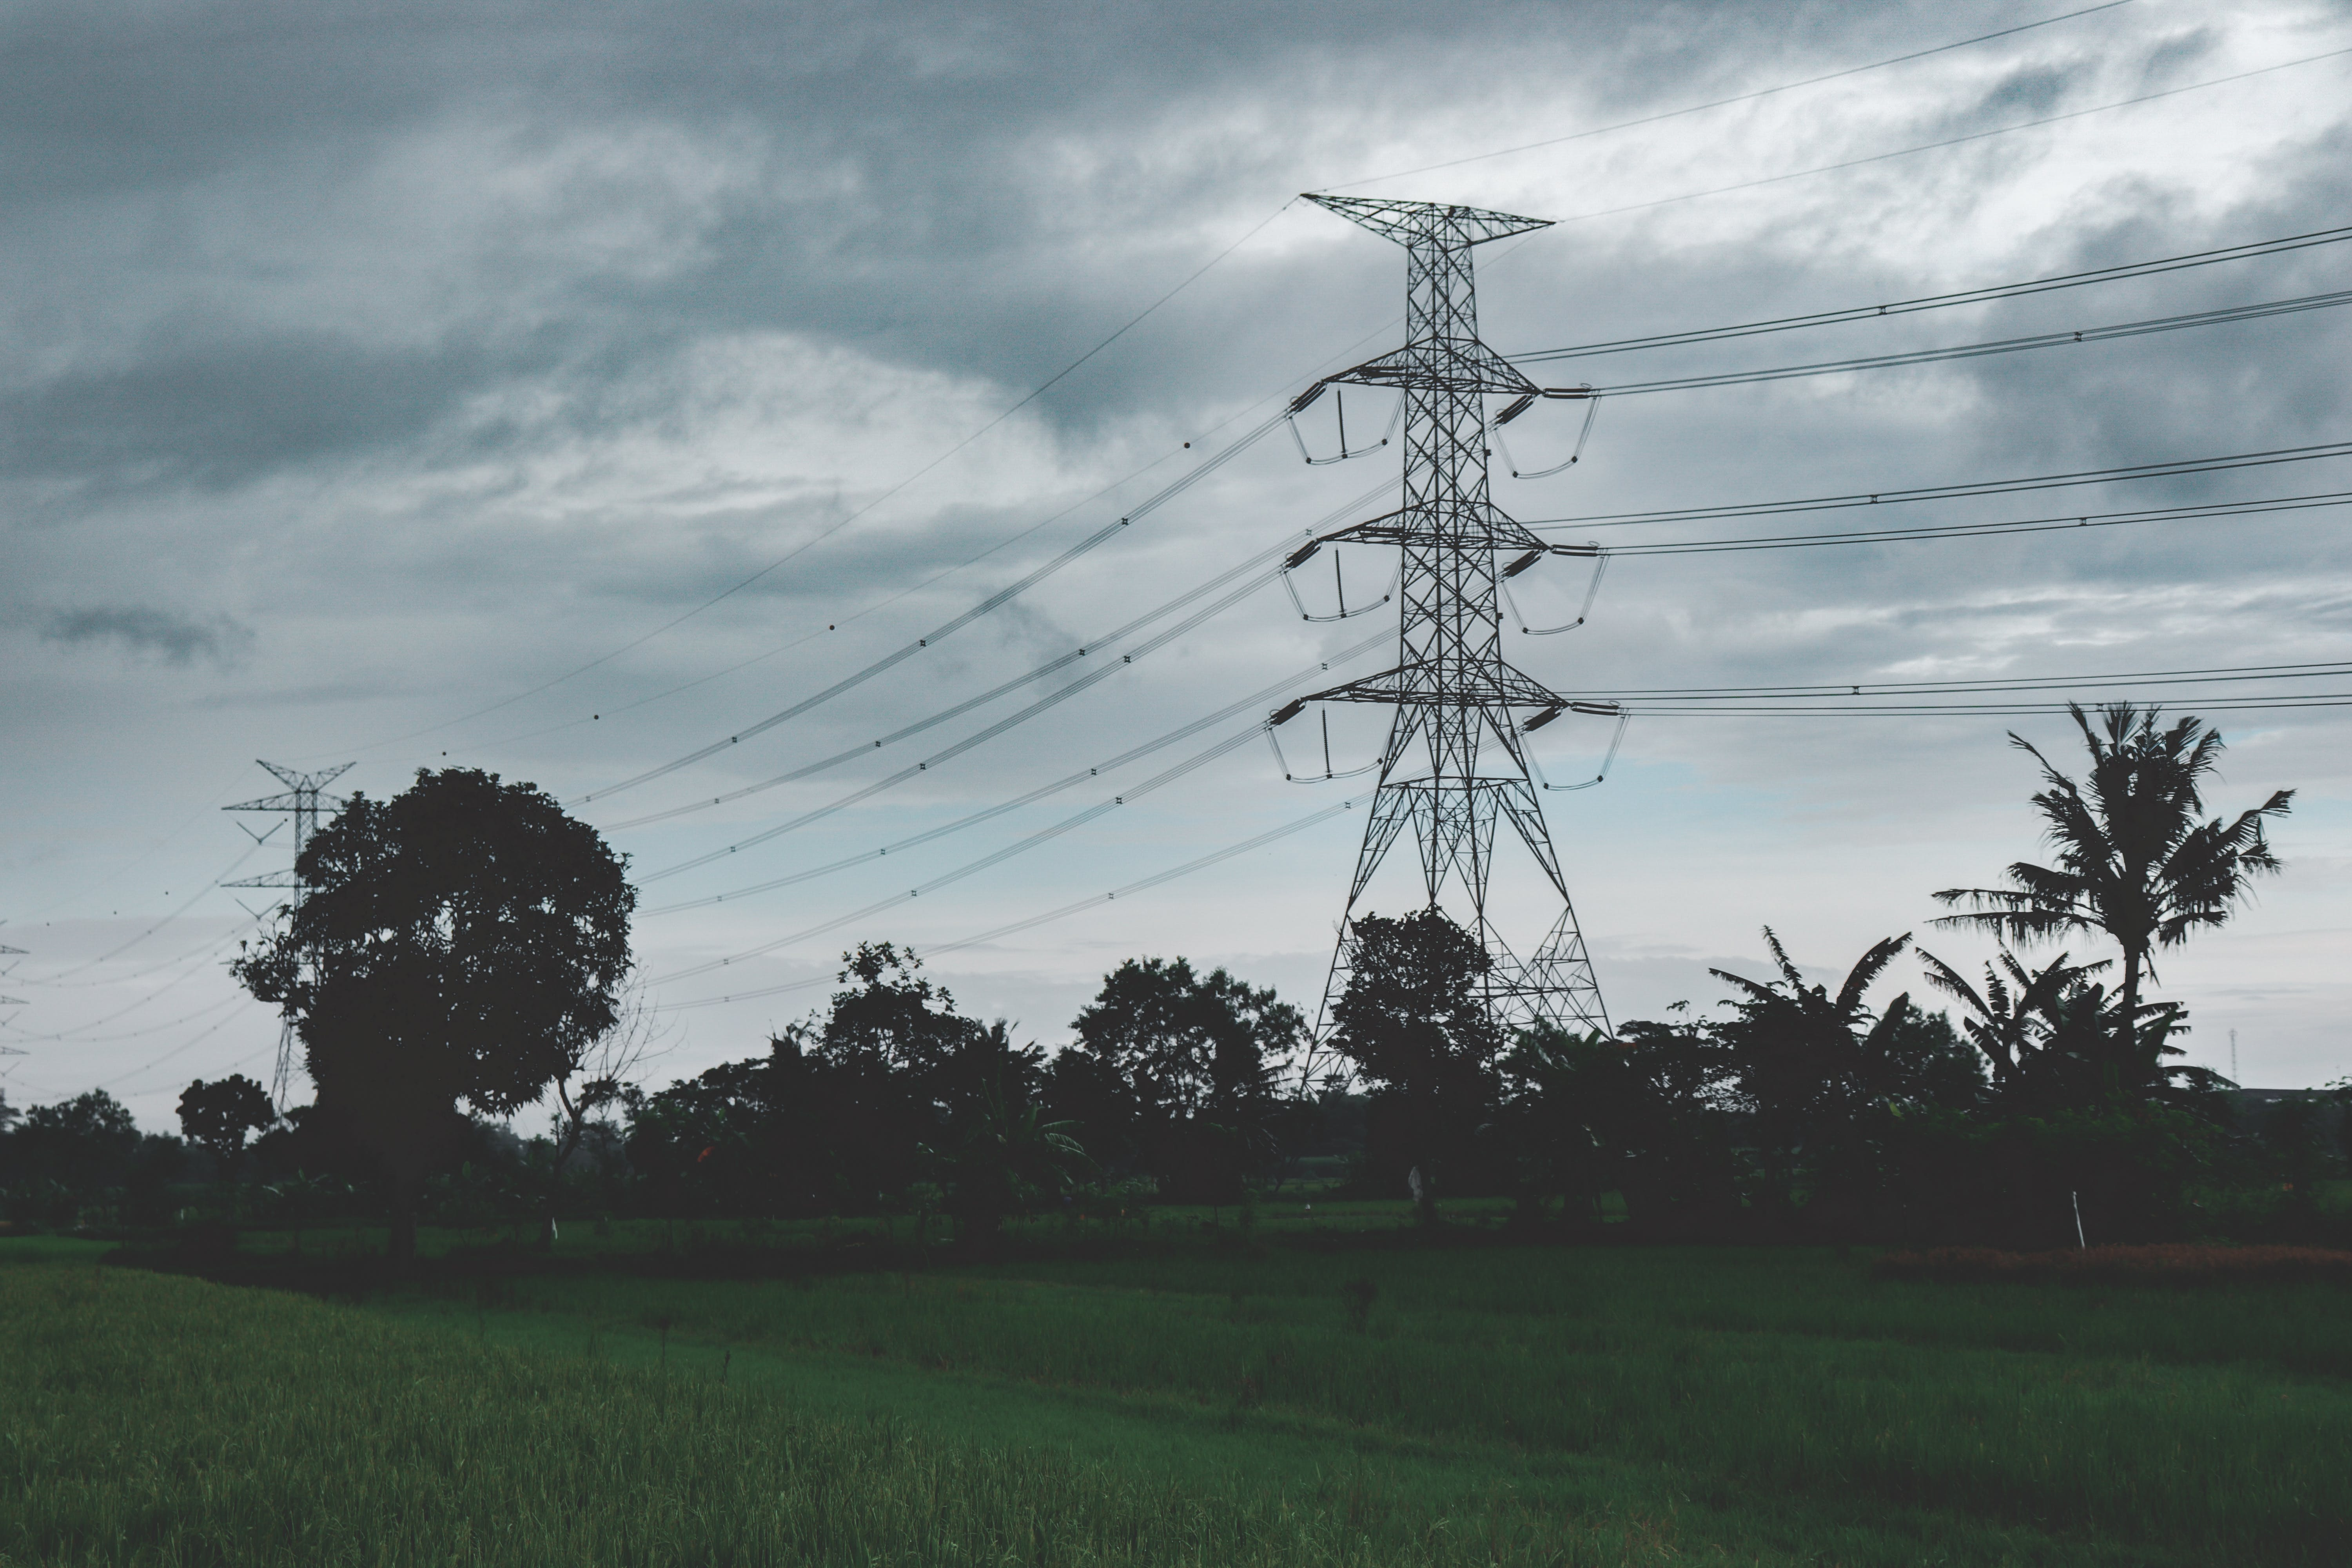 Free stock photo of landscape, cloudy, tower, communication